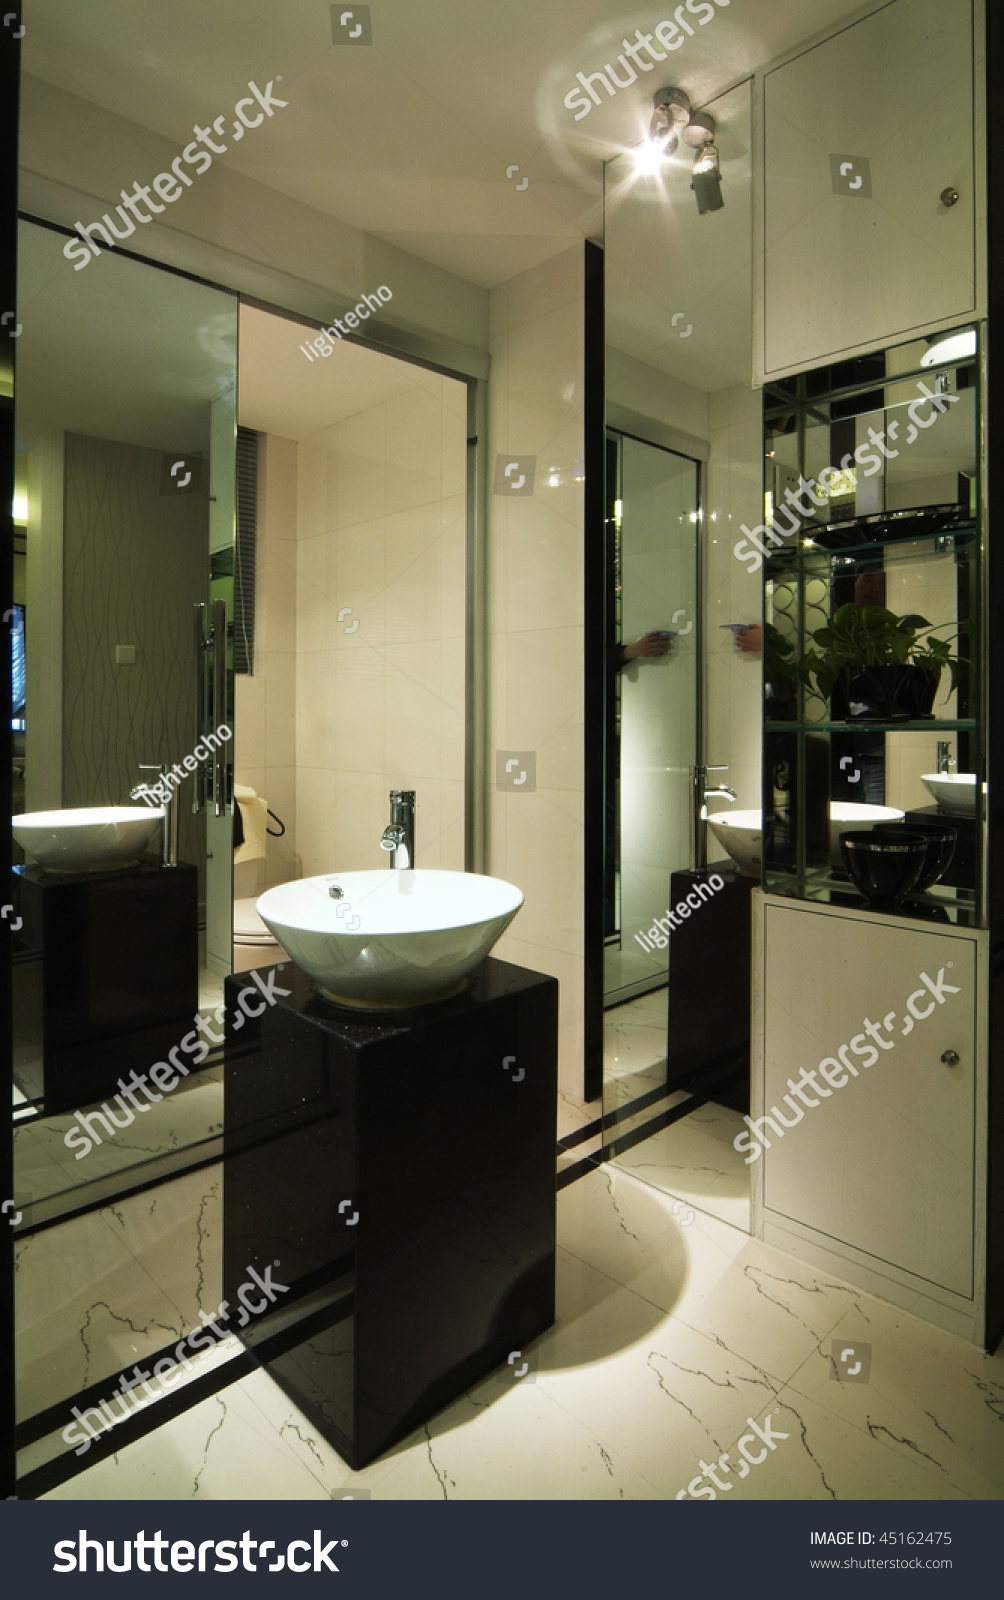 A washroom in modern style stock photo 45162475 for Washroom style